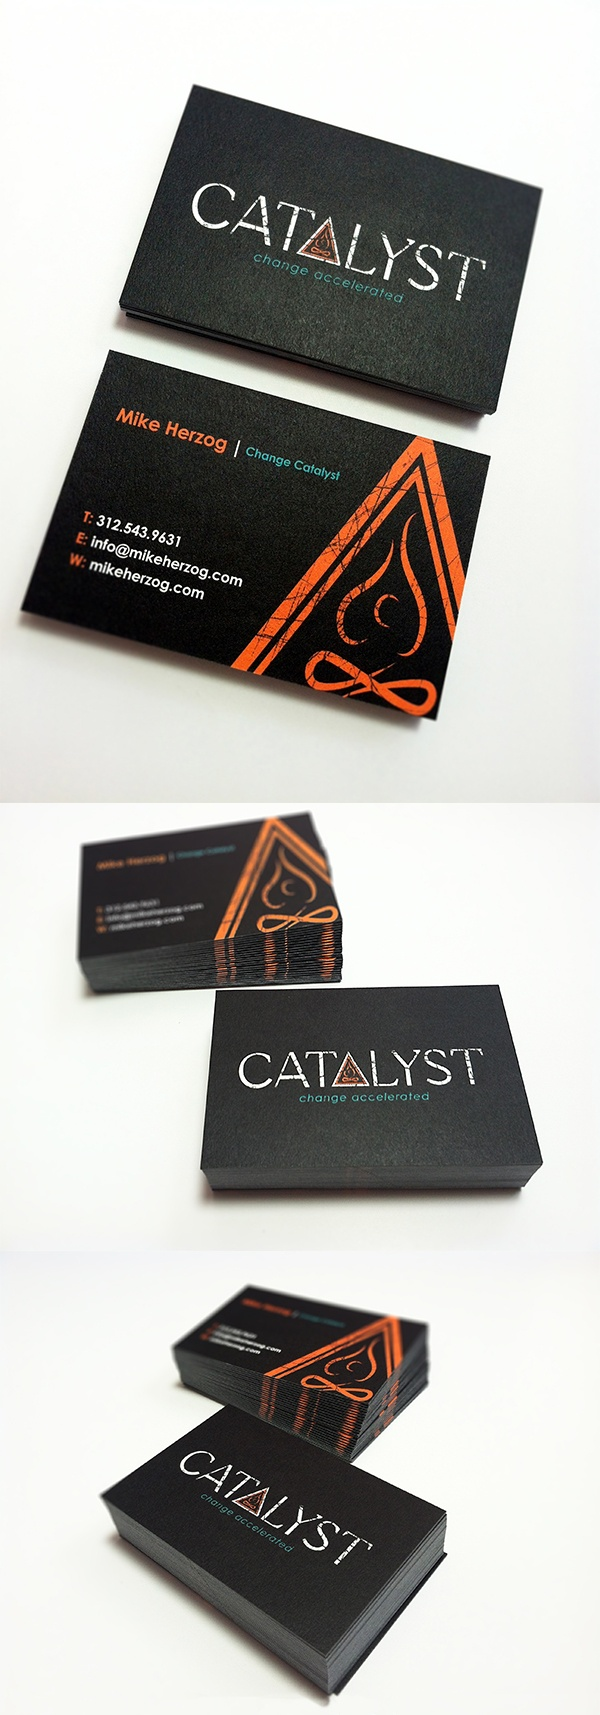 338 best business cards images on Pinterest | Business card design ...